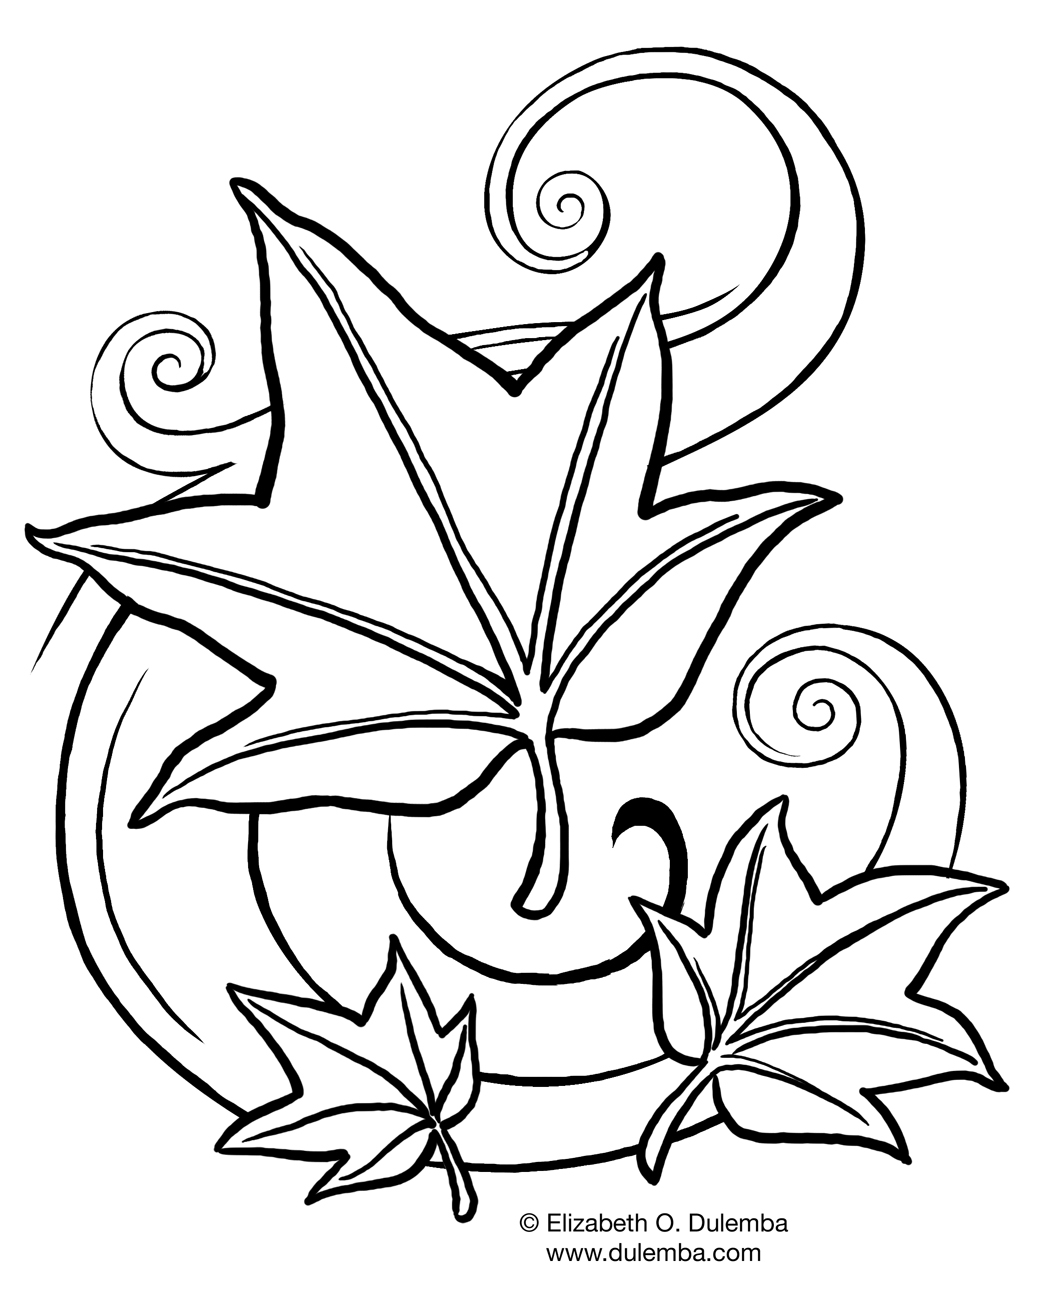 coloring pictures fall fall coloring book adultcoloringbookz fall coloring pictures